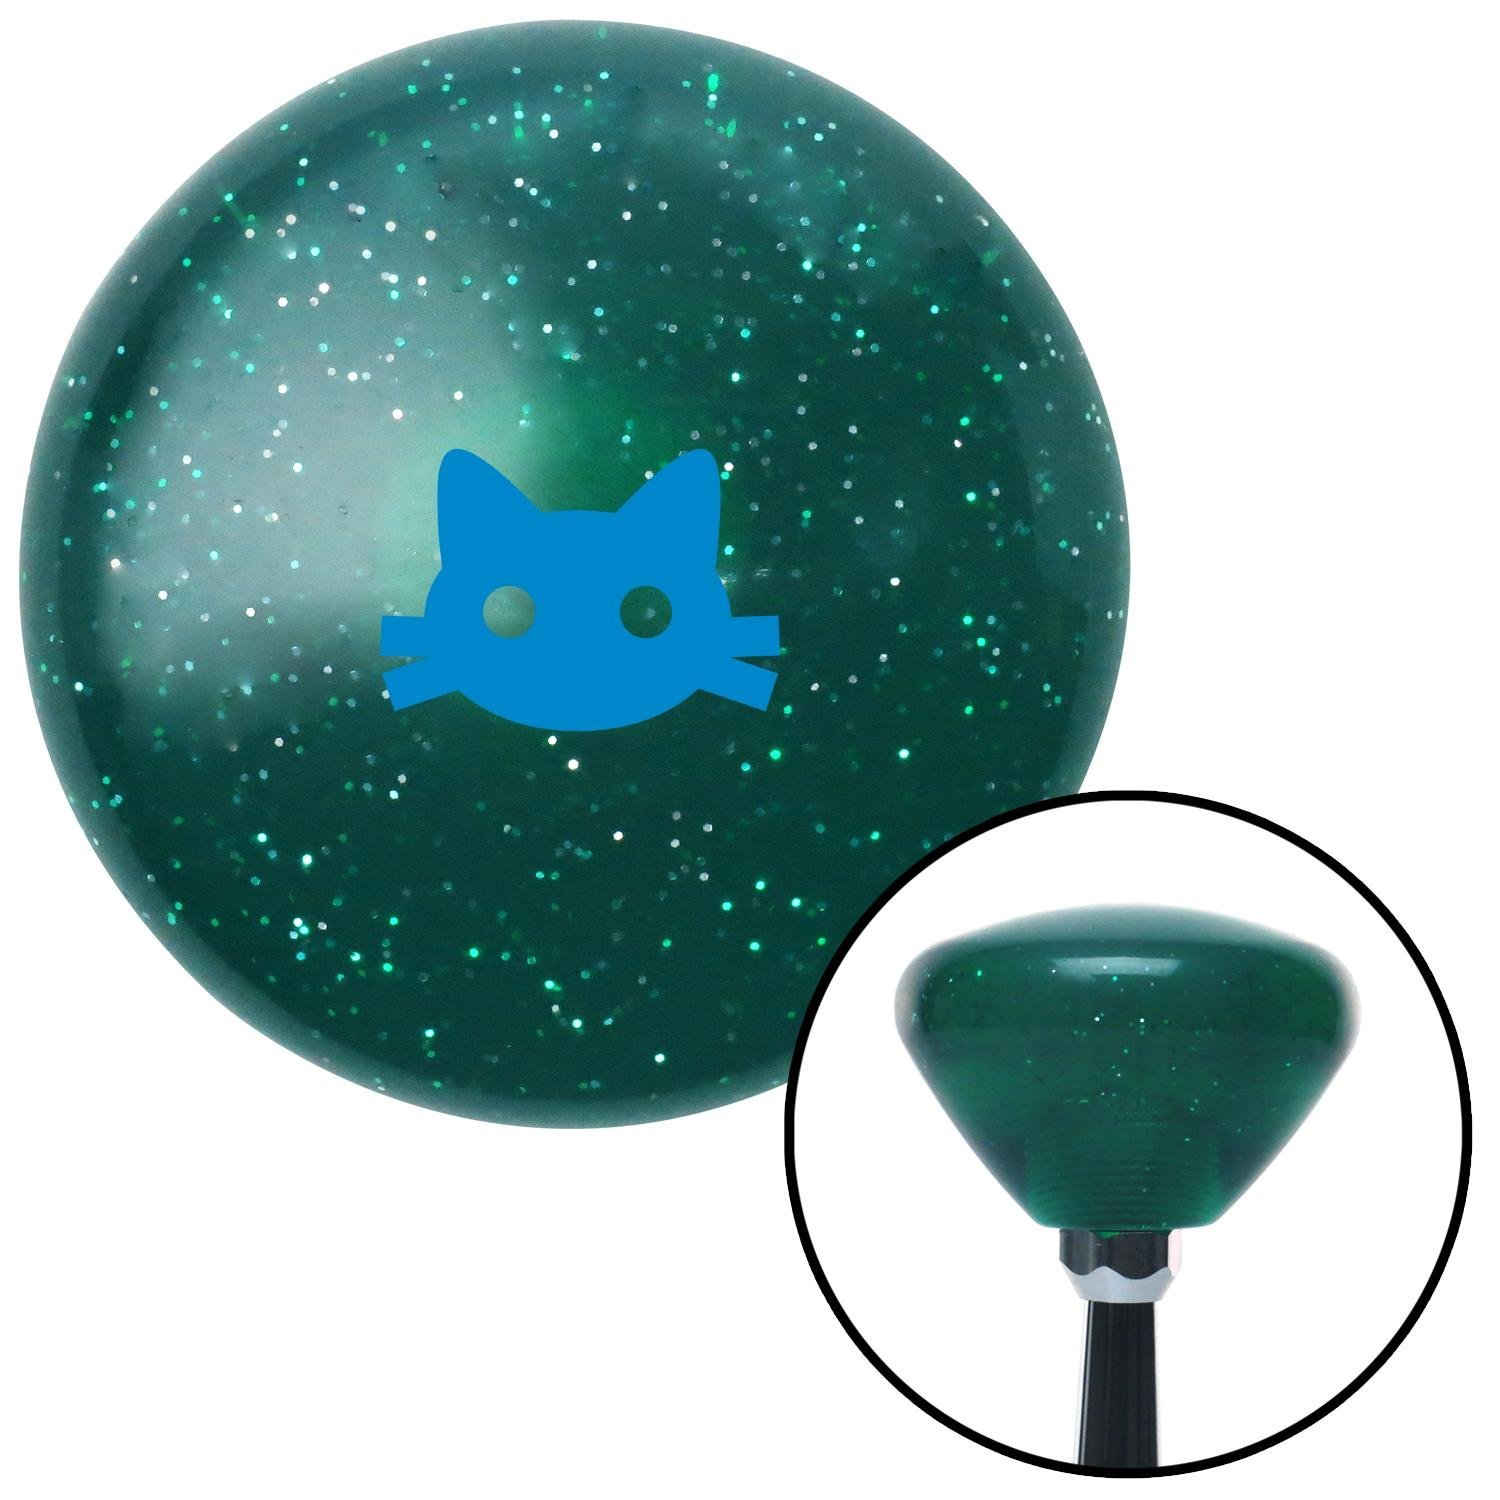 American Shifter 176528 Orange Retro Metal Flake Shift Knob with M16 x 1.5 Insert Green Lock Symbol